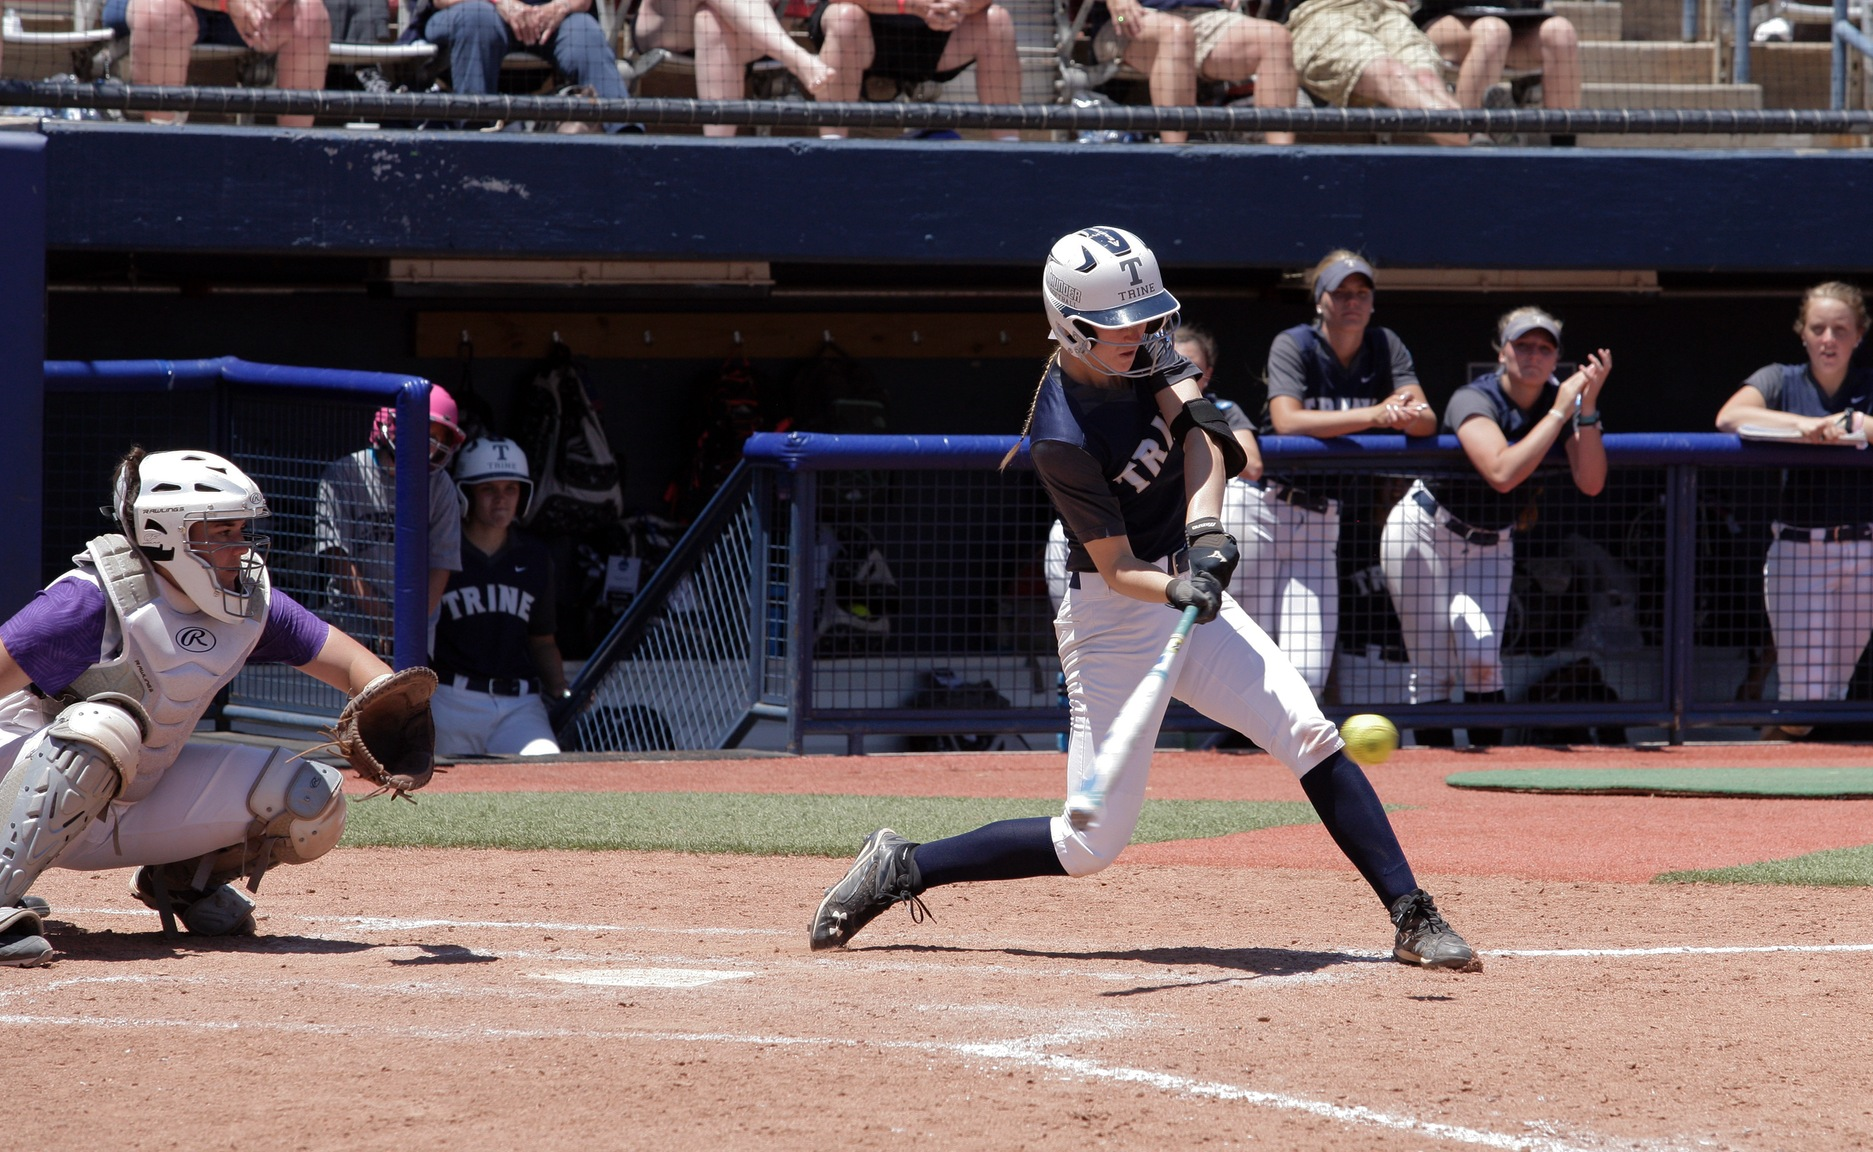 Thunder Fall to Amherst in Extras at National Championship